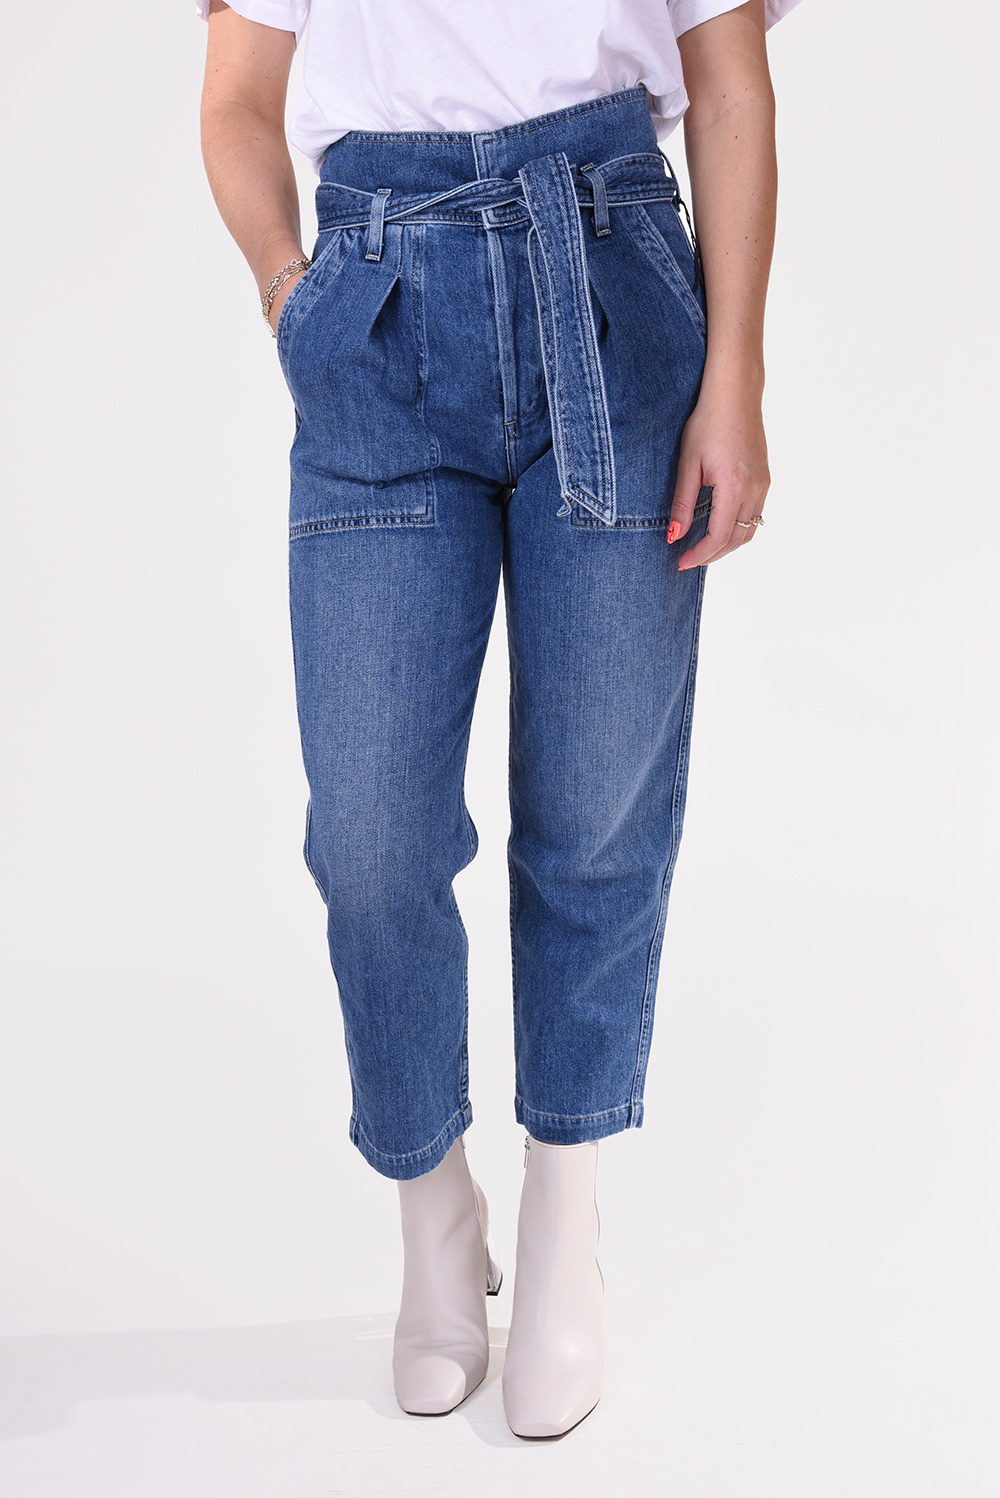 Citizens of Humanity jeans Noelle 1899-1300 blauw